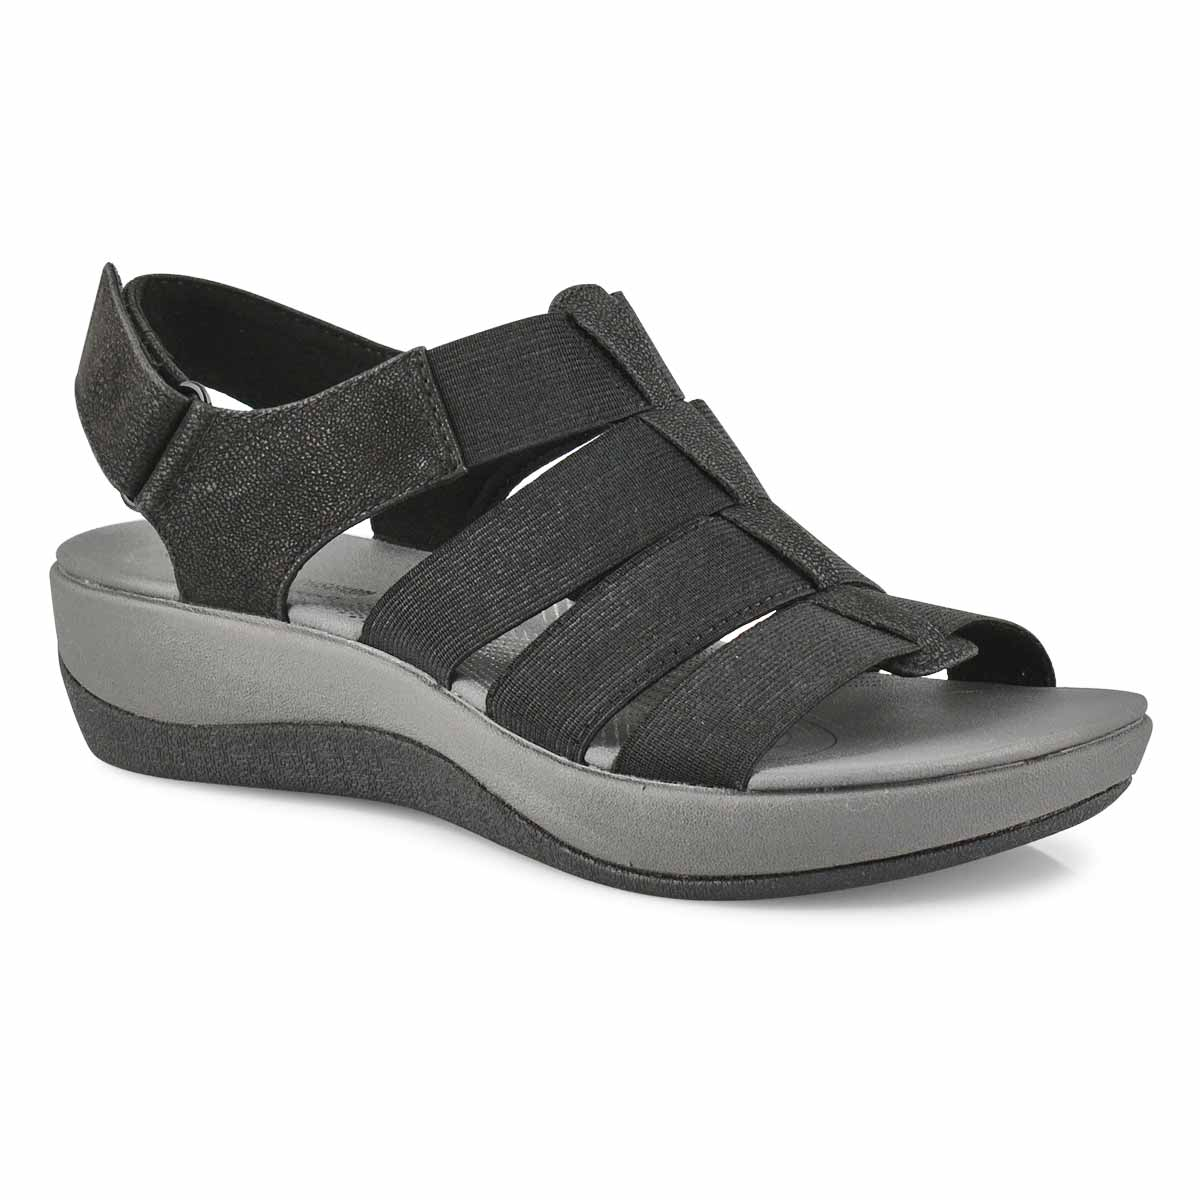 Lds Arla Shaylie blk casual wedge sandal